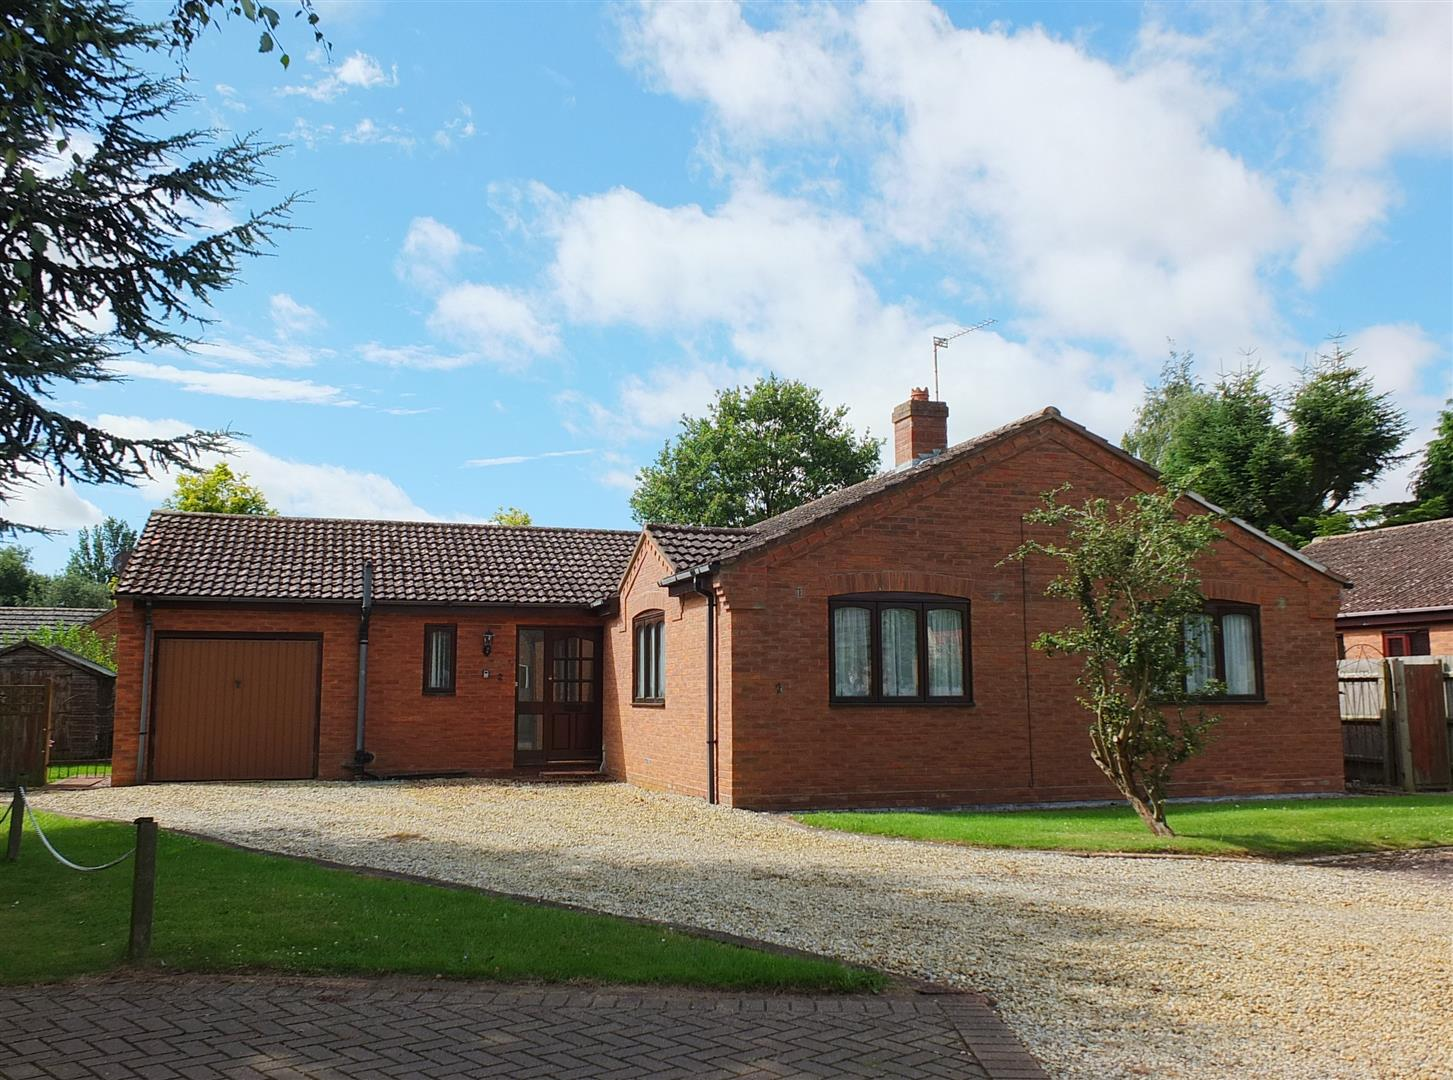 4 bed detached bungalow for sale in Sutton Bridge Spalding, PE12 9QN 0